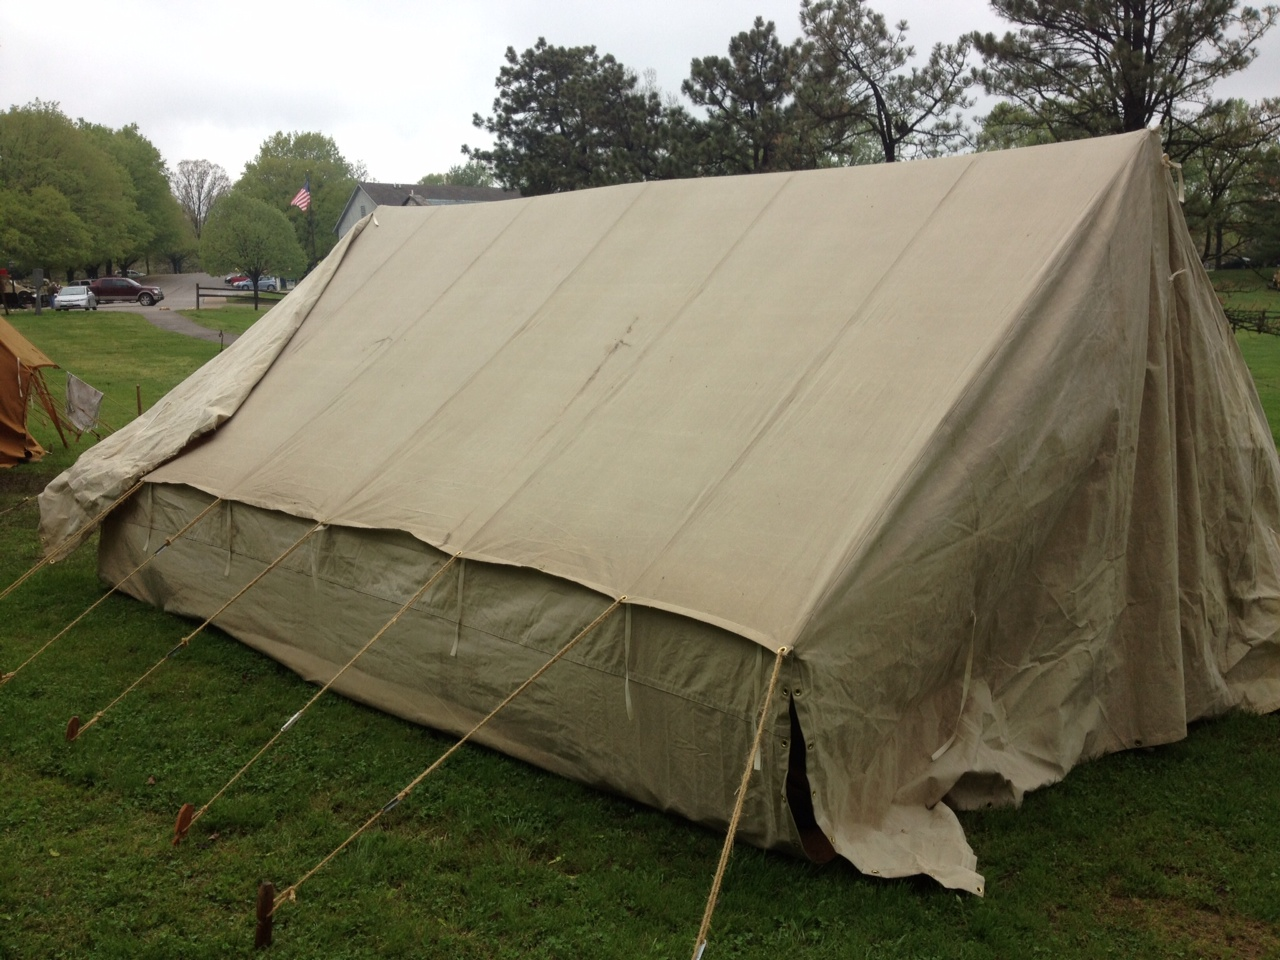 Ex&le of Customer who aged the canvas to get period look & German WWII Tents from Armbruster | Armbruster Tent Maker